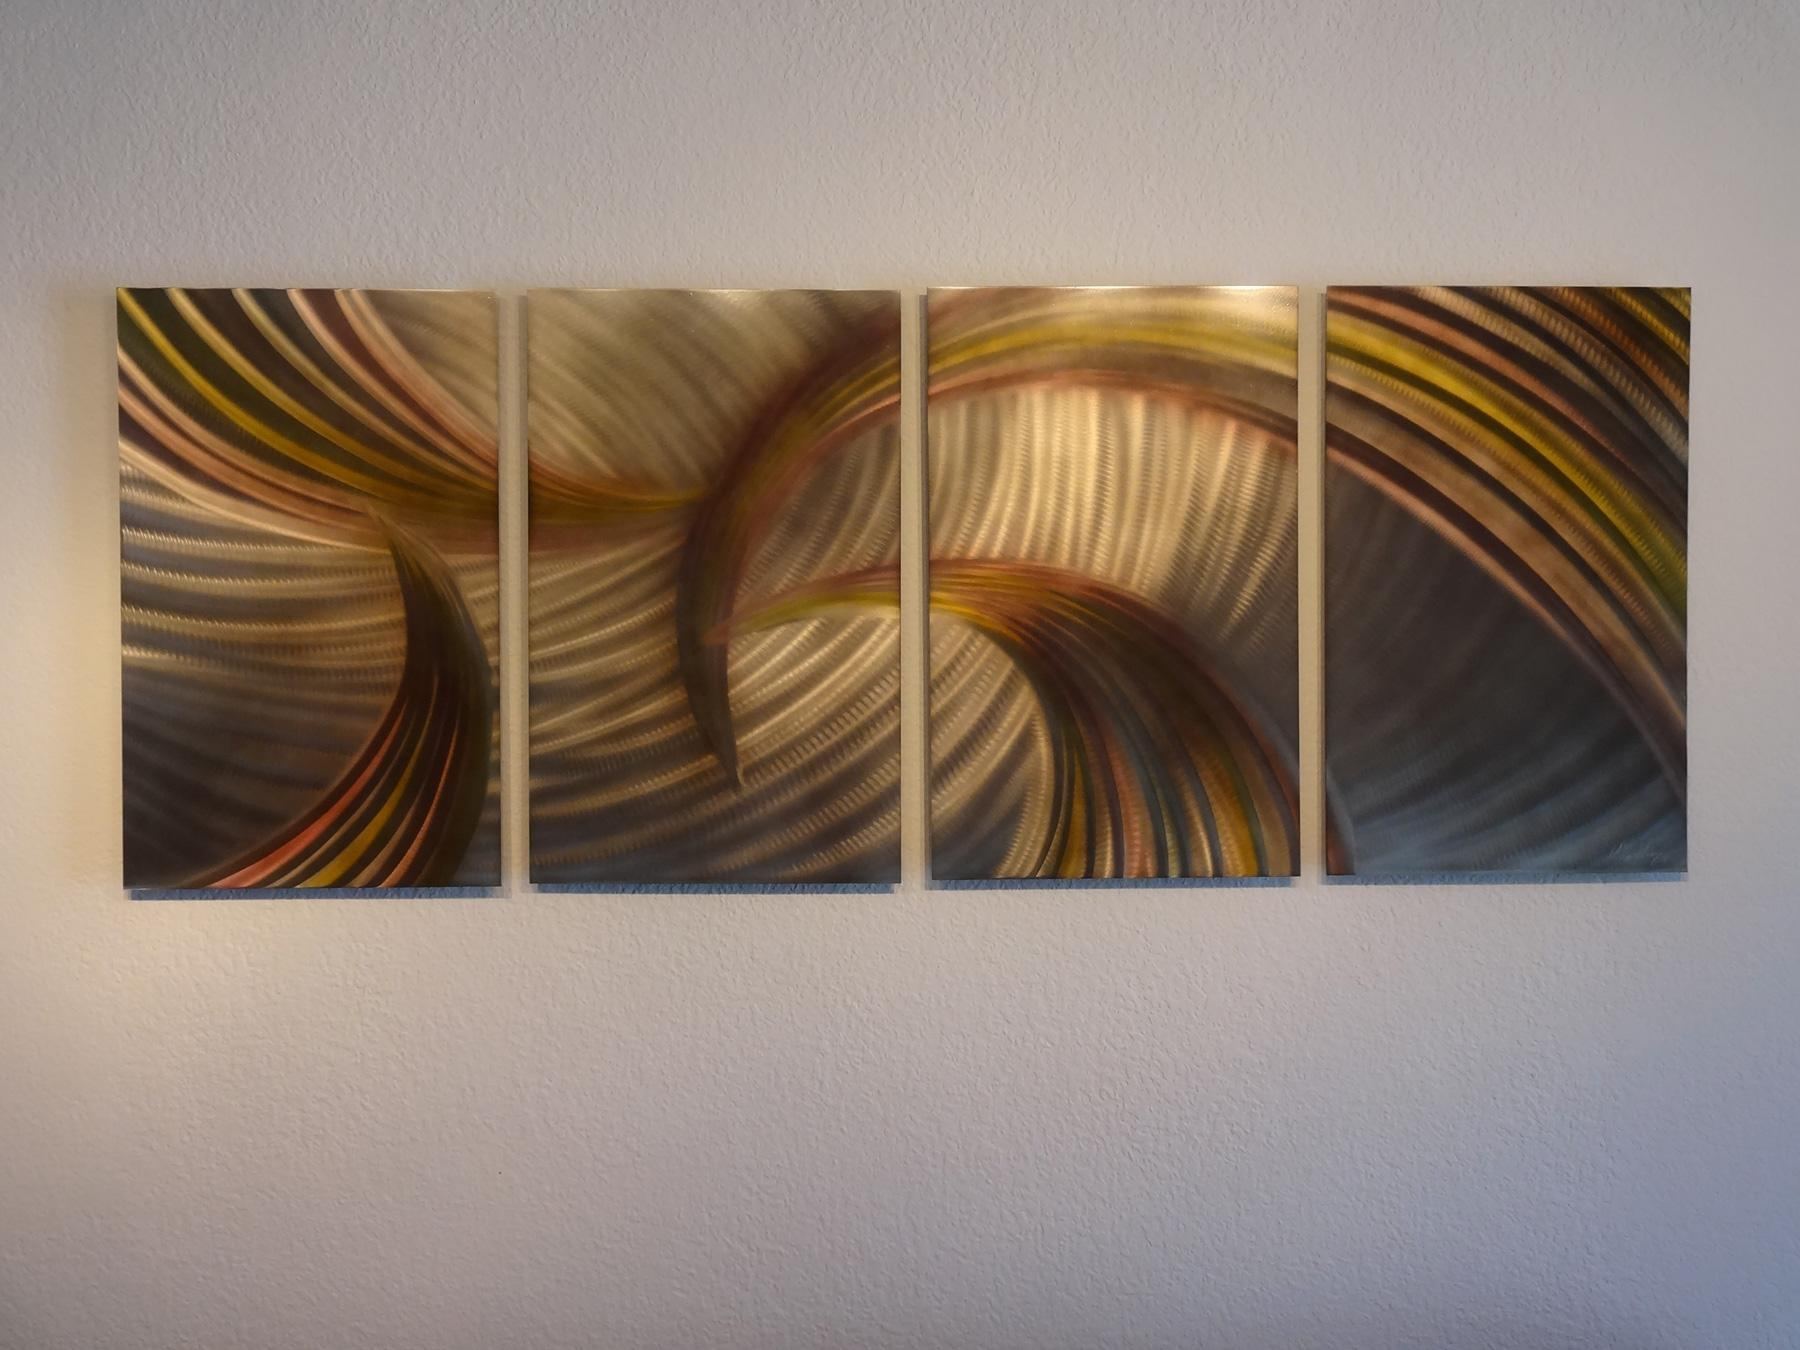 Tempest Bronze – Abstract Metal Wall Art Contemporary Modern Decor Within Metal Abstract Wall Art (View 12 of 20)